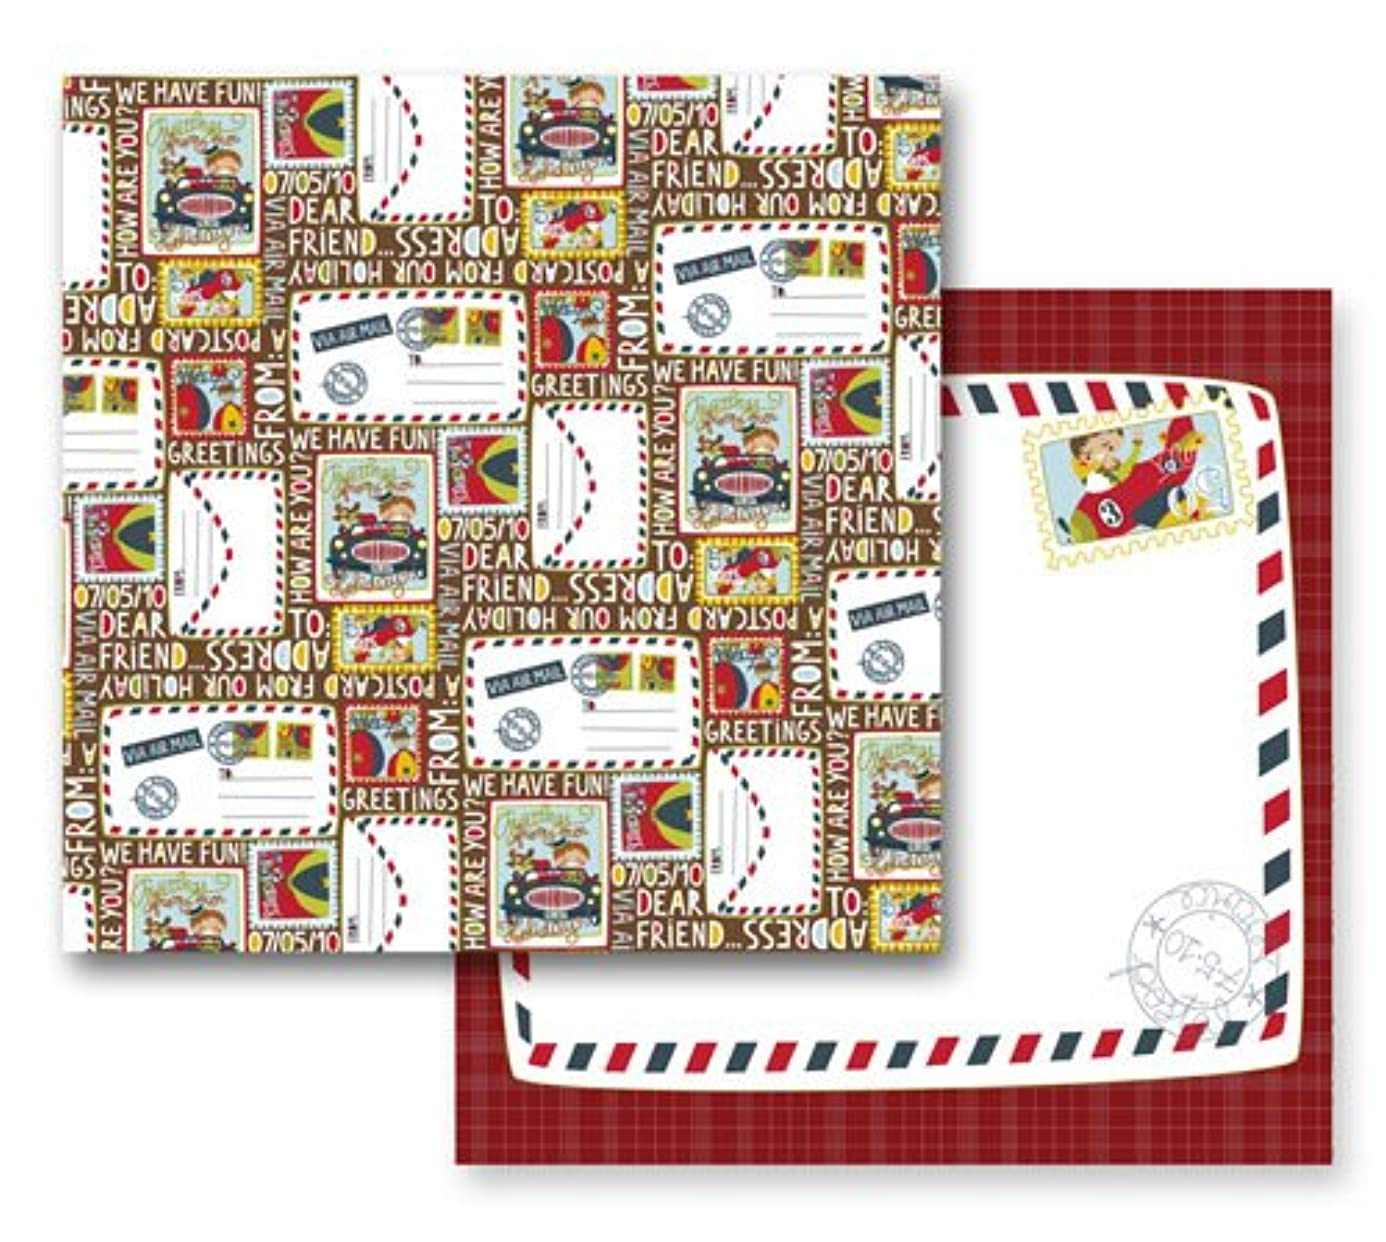 Prima 841867 12 by 12-Inch Annalee Double-Sided Cardstock Paper, Postcards, 10-Pack zxd2681209